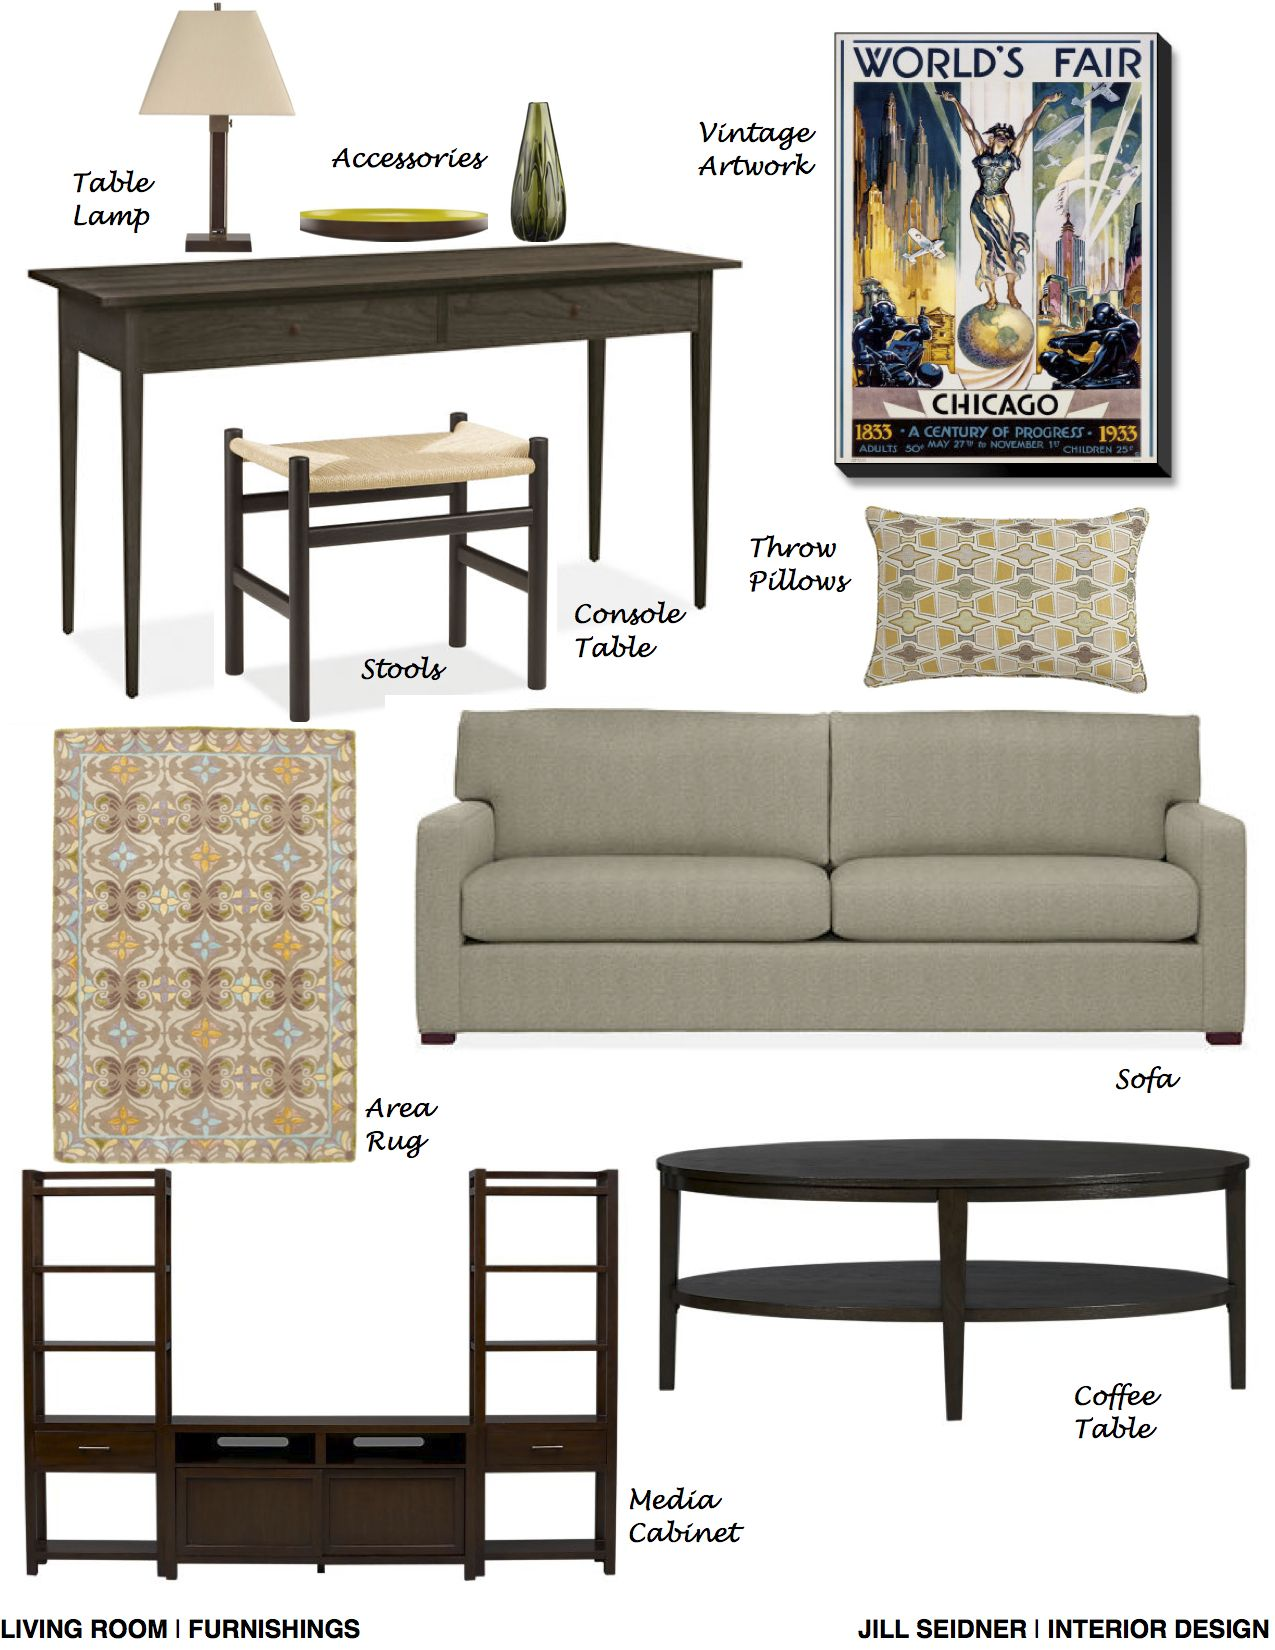 Oak Park IL Online Design Project Living Room Furnishings Concept Board